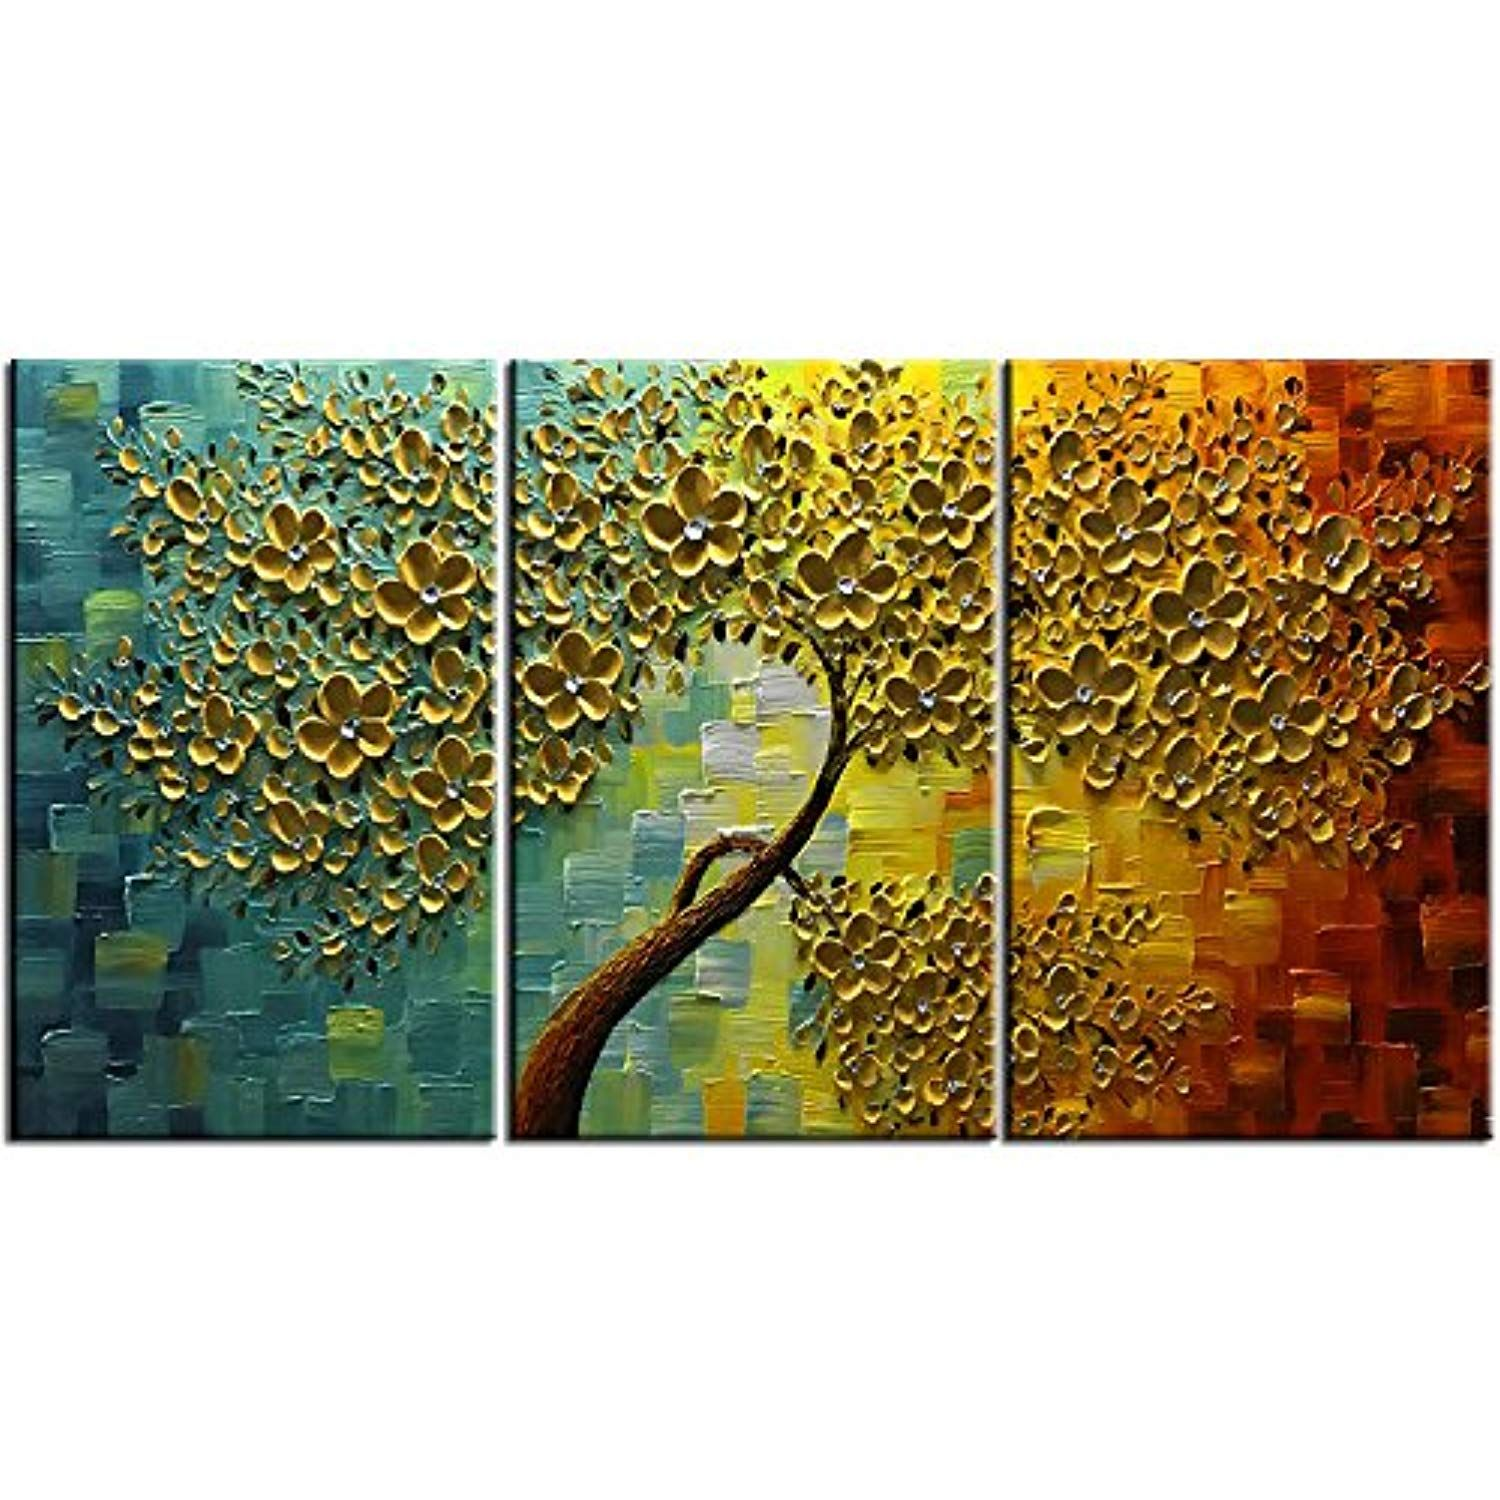 Baccow 28 20 3 Hand Painted 3 Piece Wall Art 3d Oil Painting On Canvas Palette Knife Flower Trees Pa Texture Painting On Canvas Tree Painting Canvas Painting